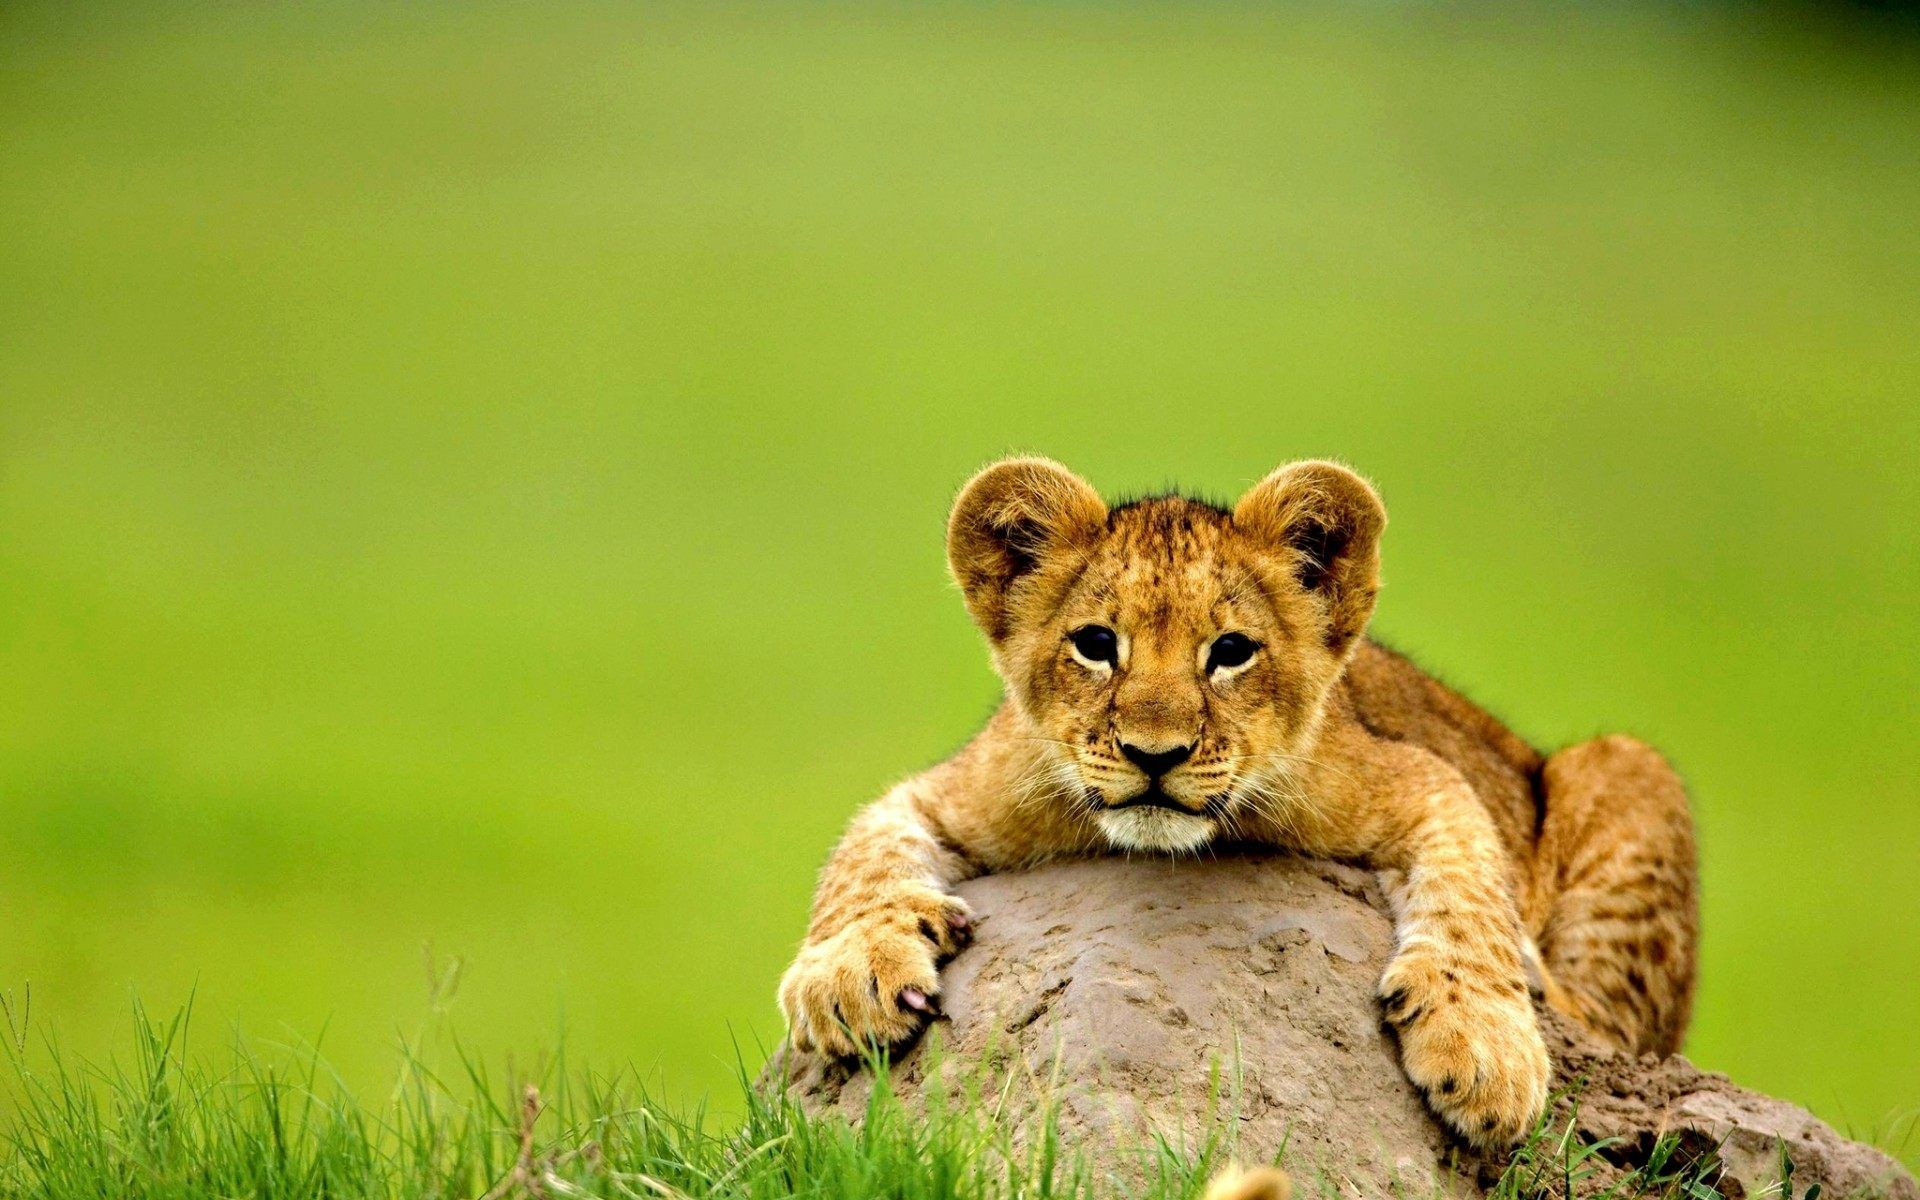 1920x1200 Fearless Lion Cub Seating on Stone Image